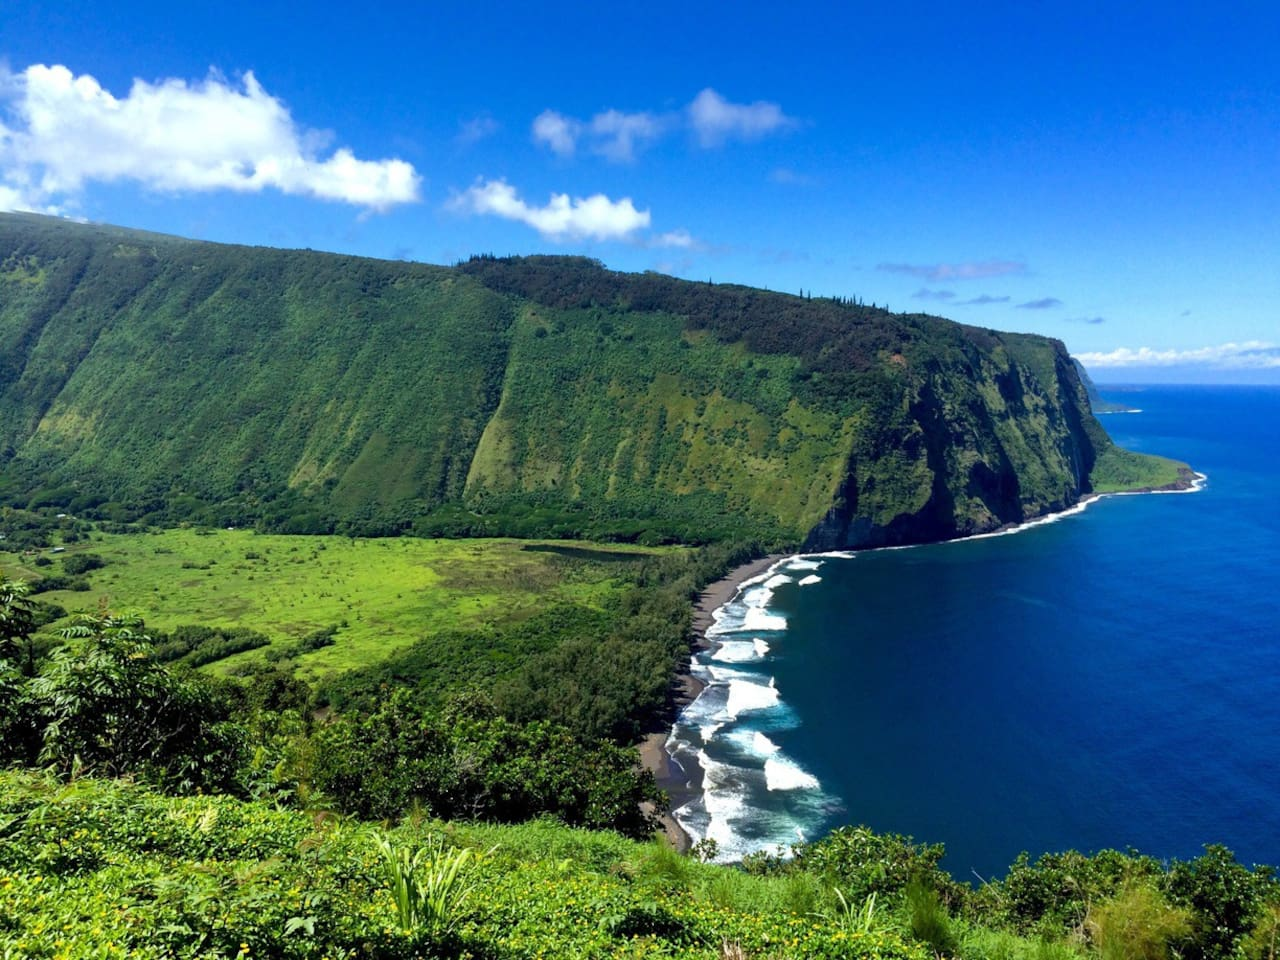 Waipio Valley! Just one of the many adventures that await you in Hawaii!